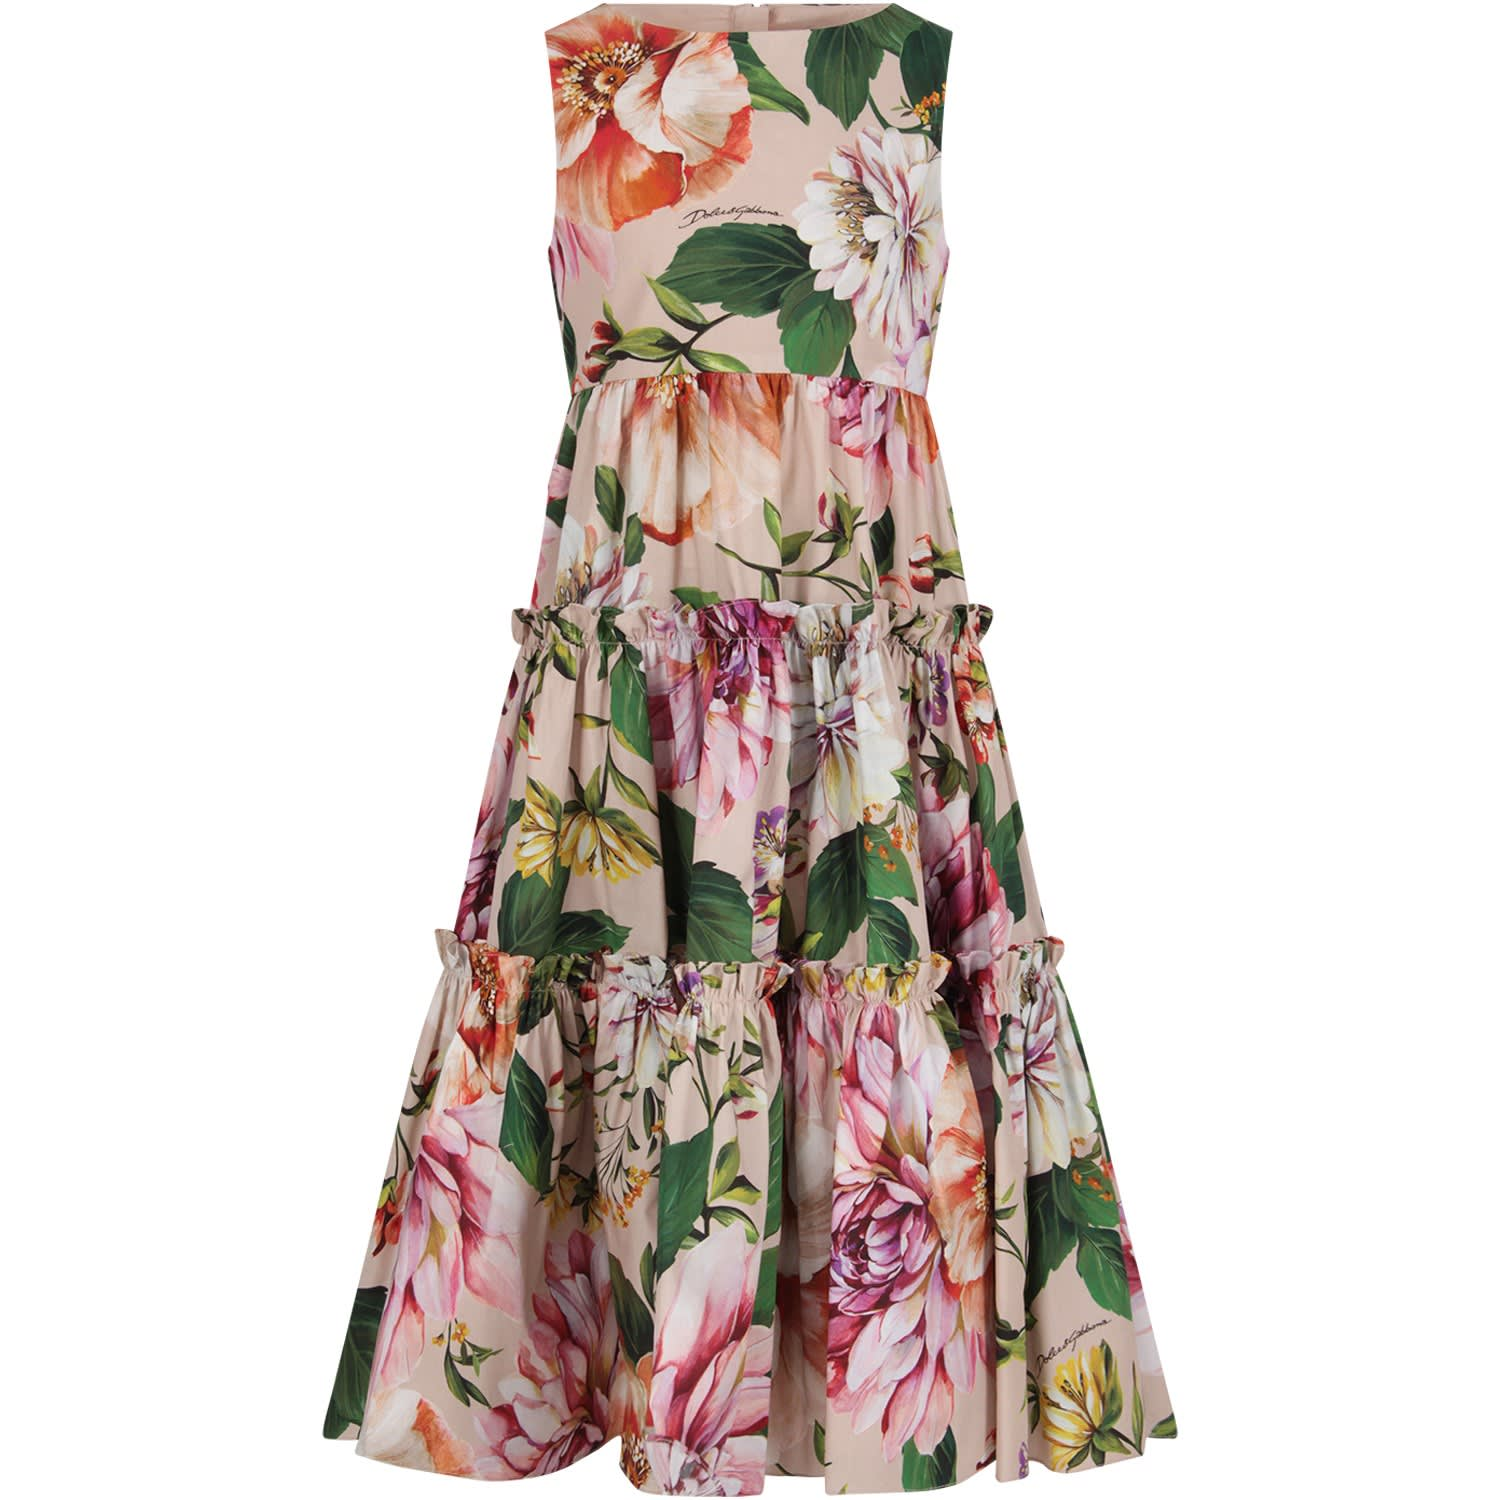 Buy Dolce & Gabbana Pink Girl Dress With Colorful Flowers online, shop Dolce & Gabbana with free shipping